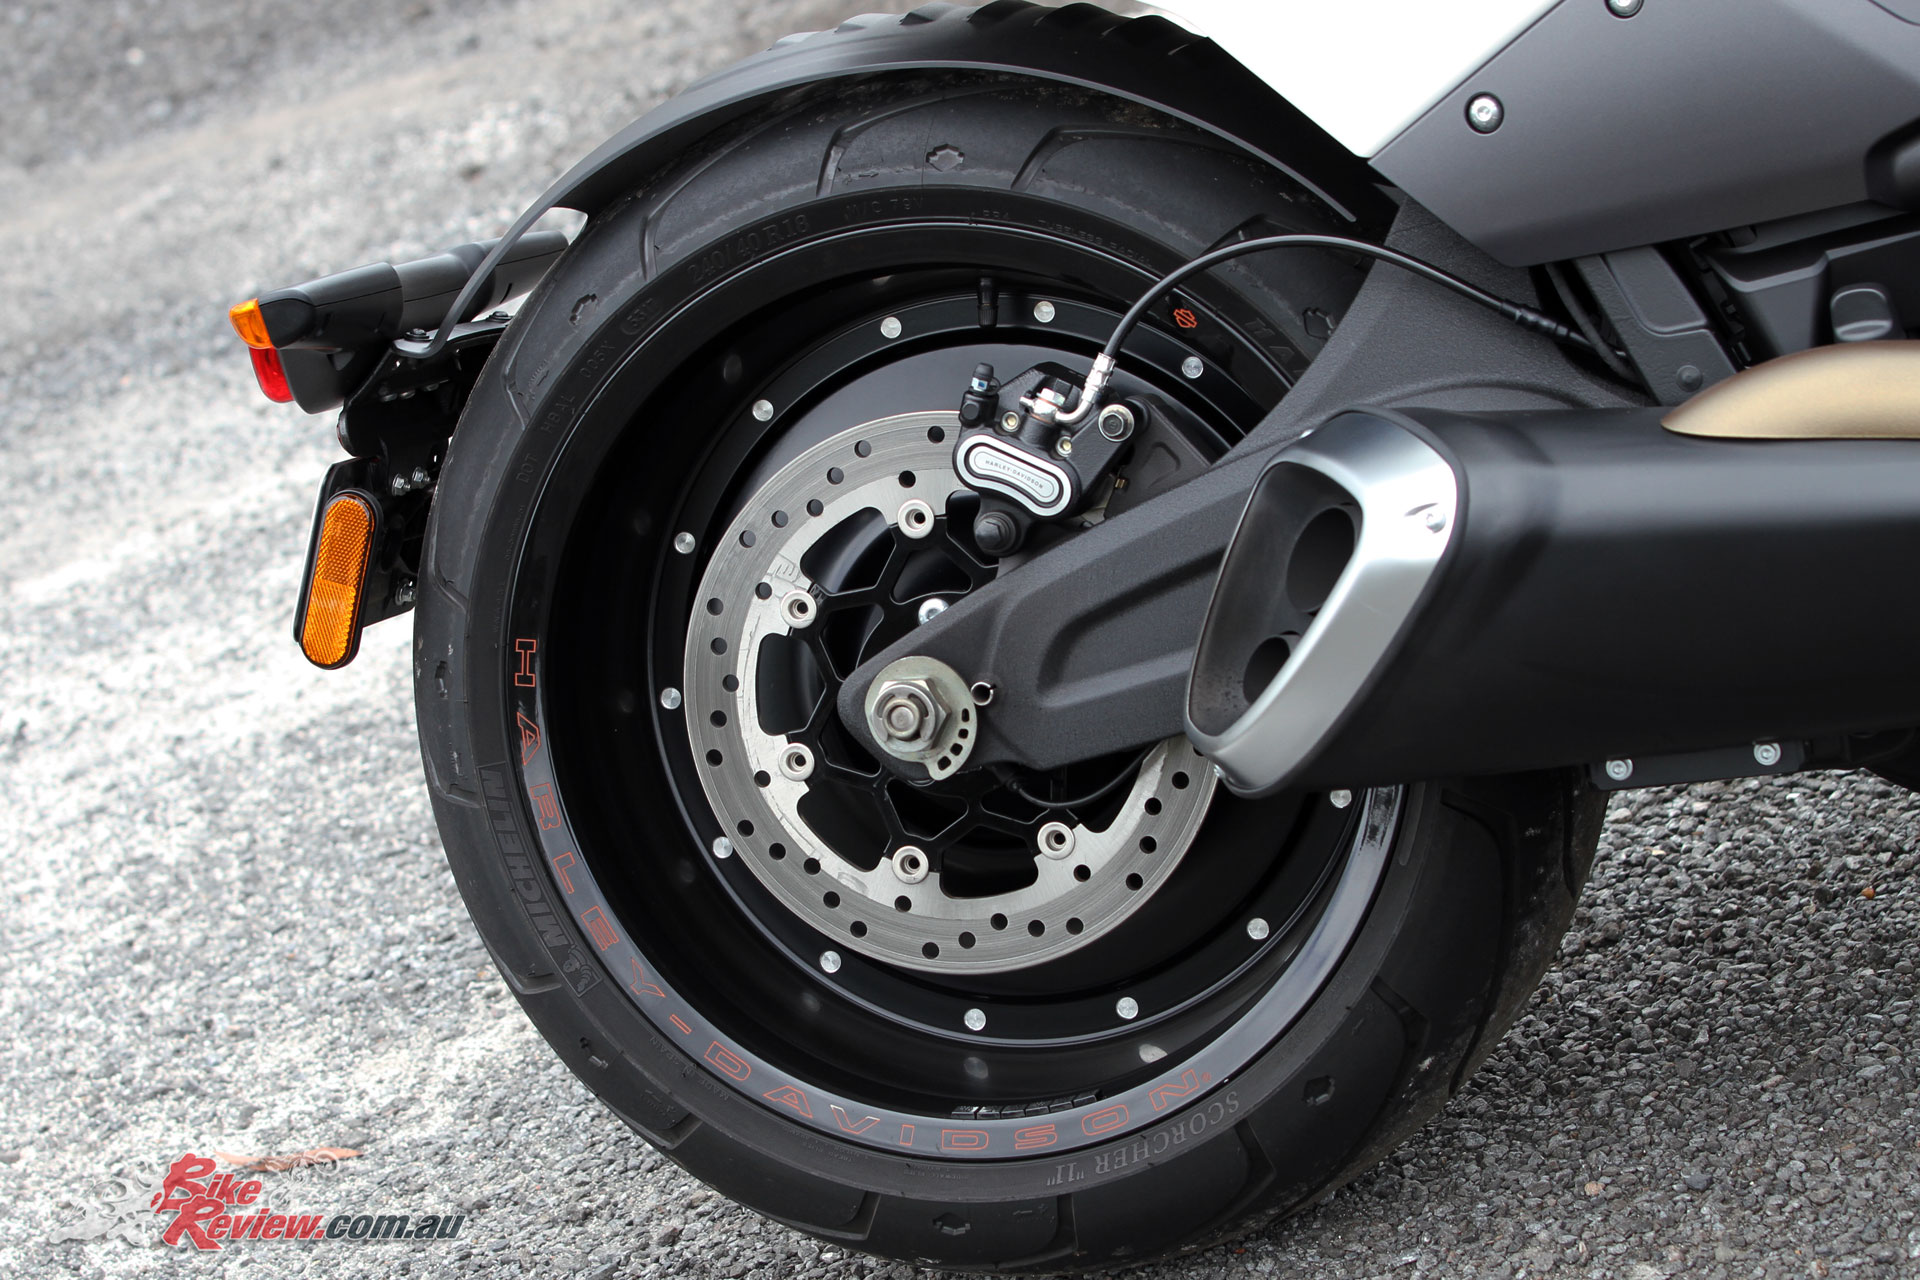 The solid rear wheel is adorned by a powerful disc brake with dual piston caliper